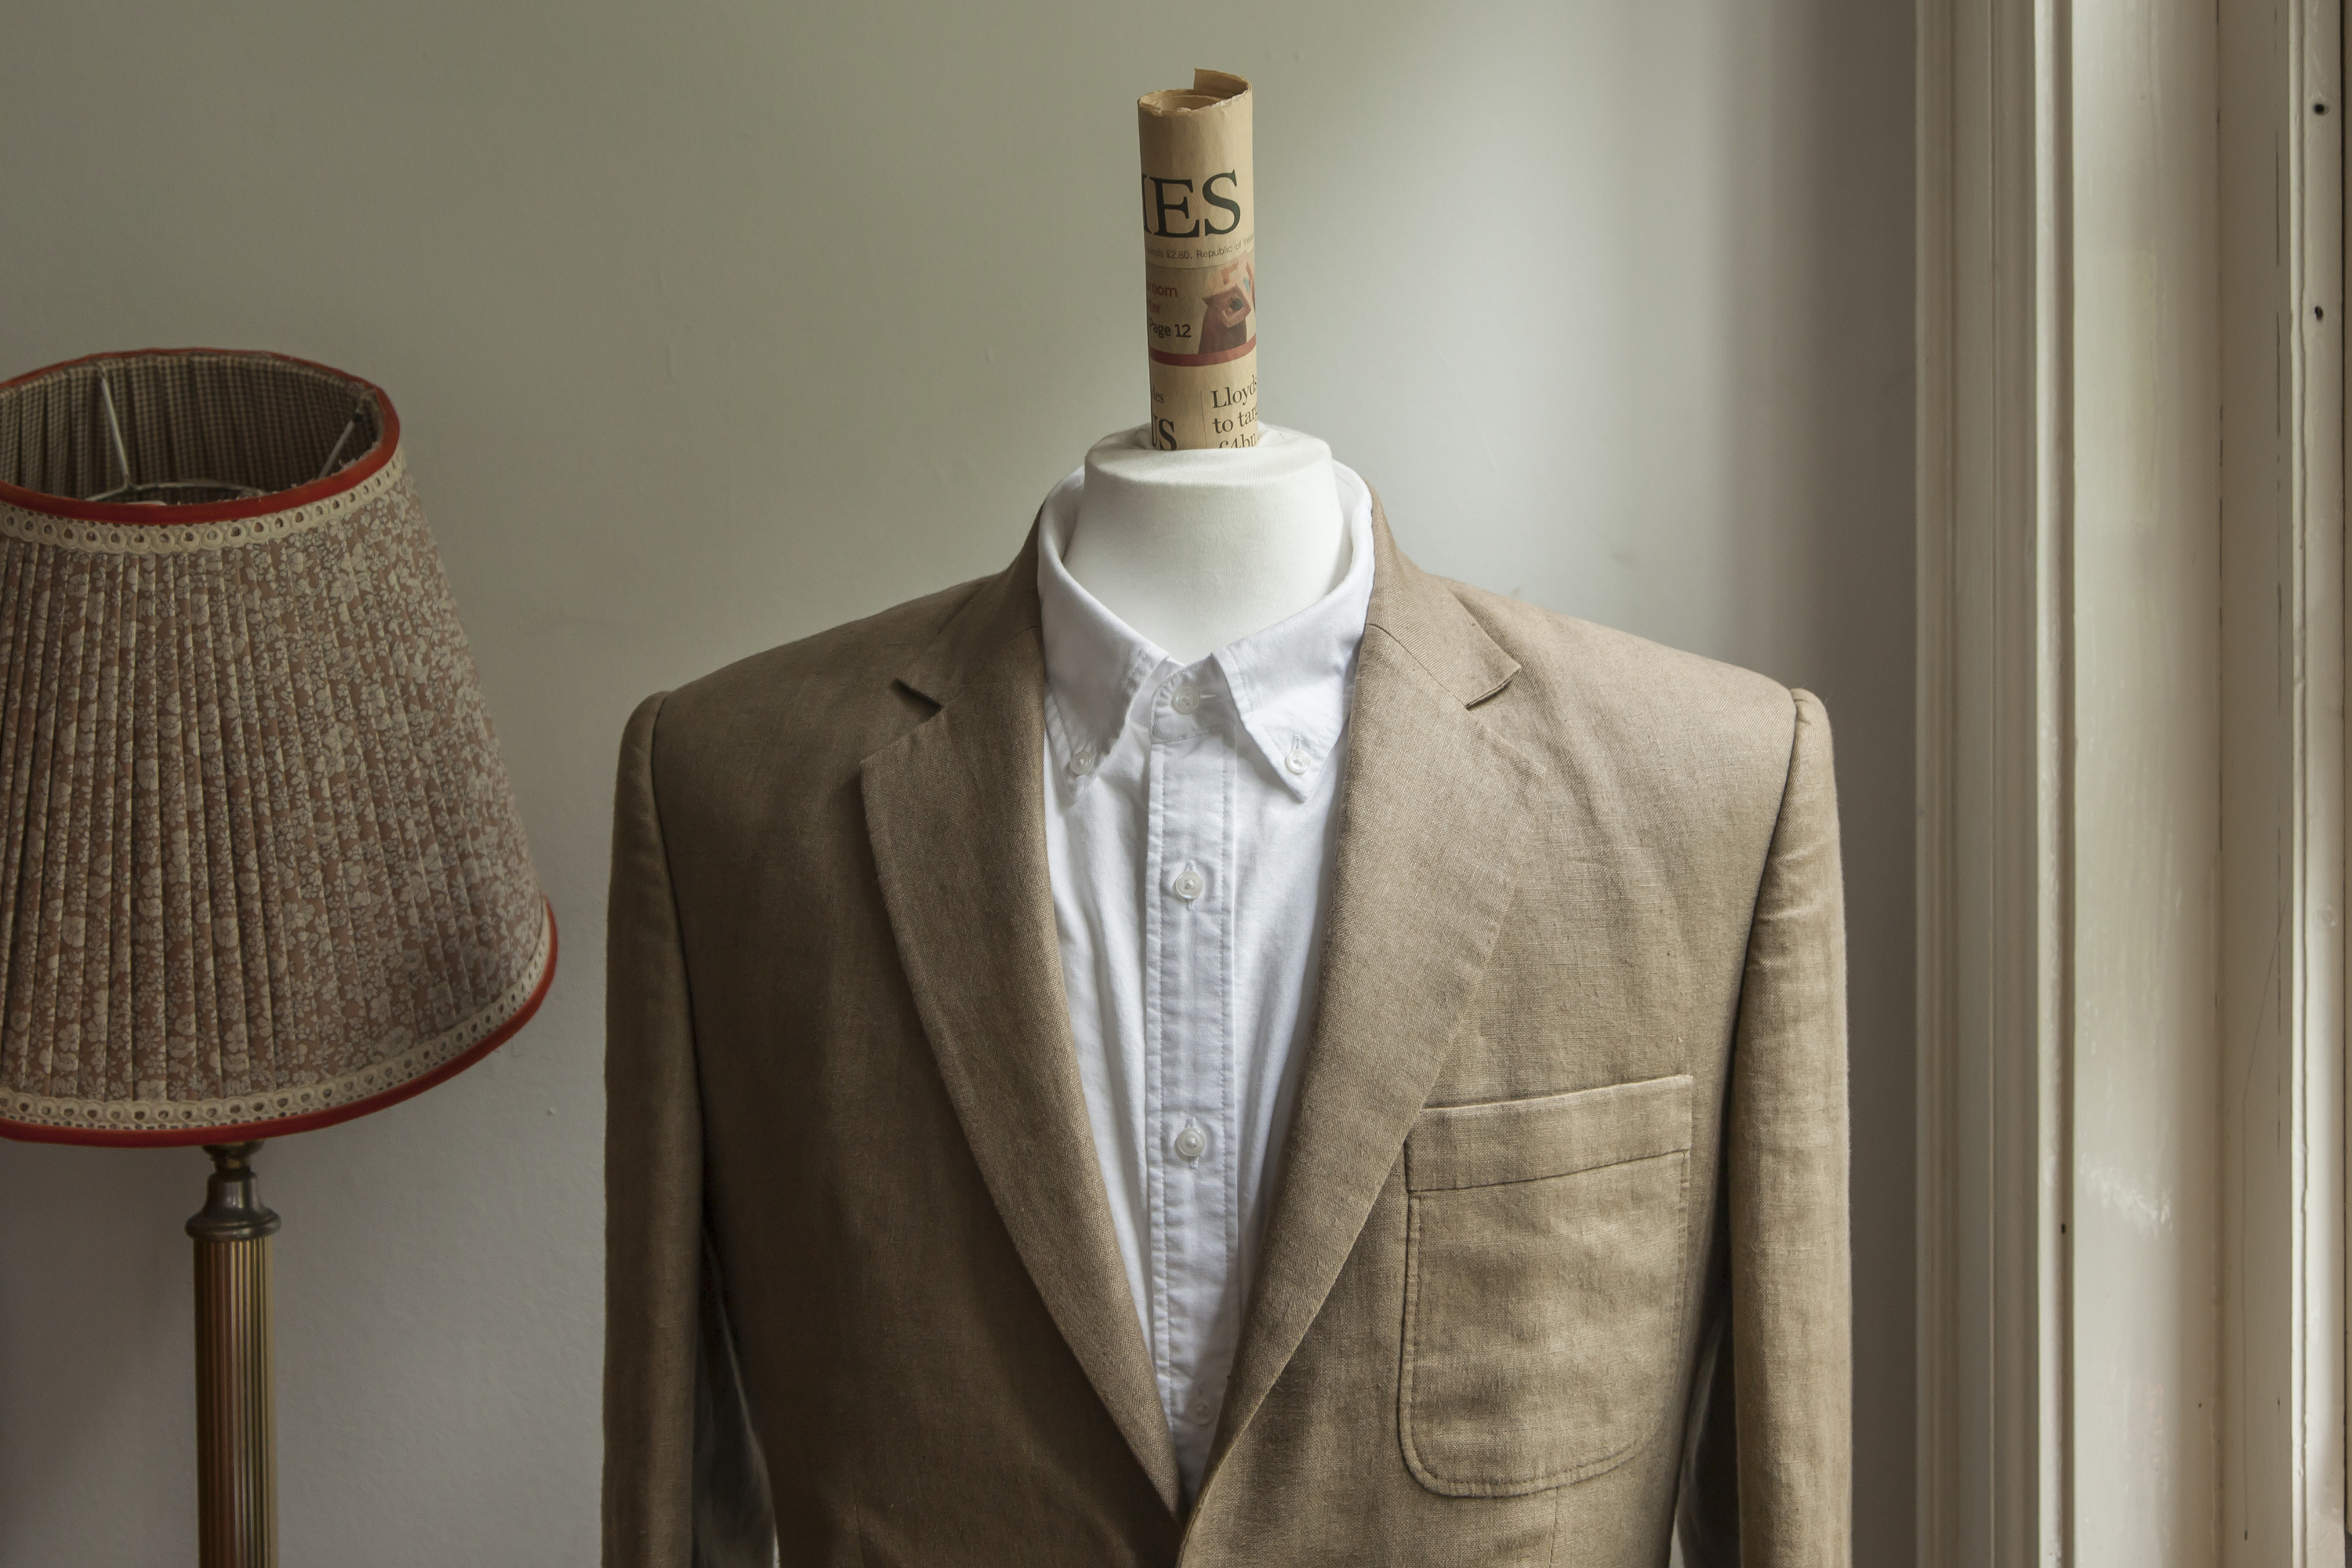 Four of the best bespoke suit services in London